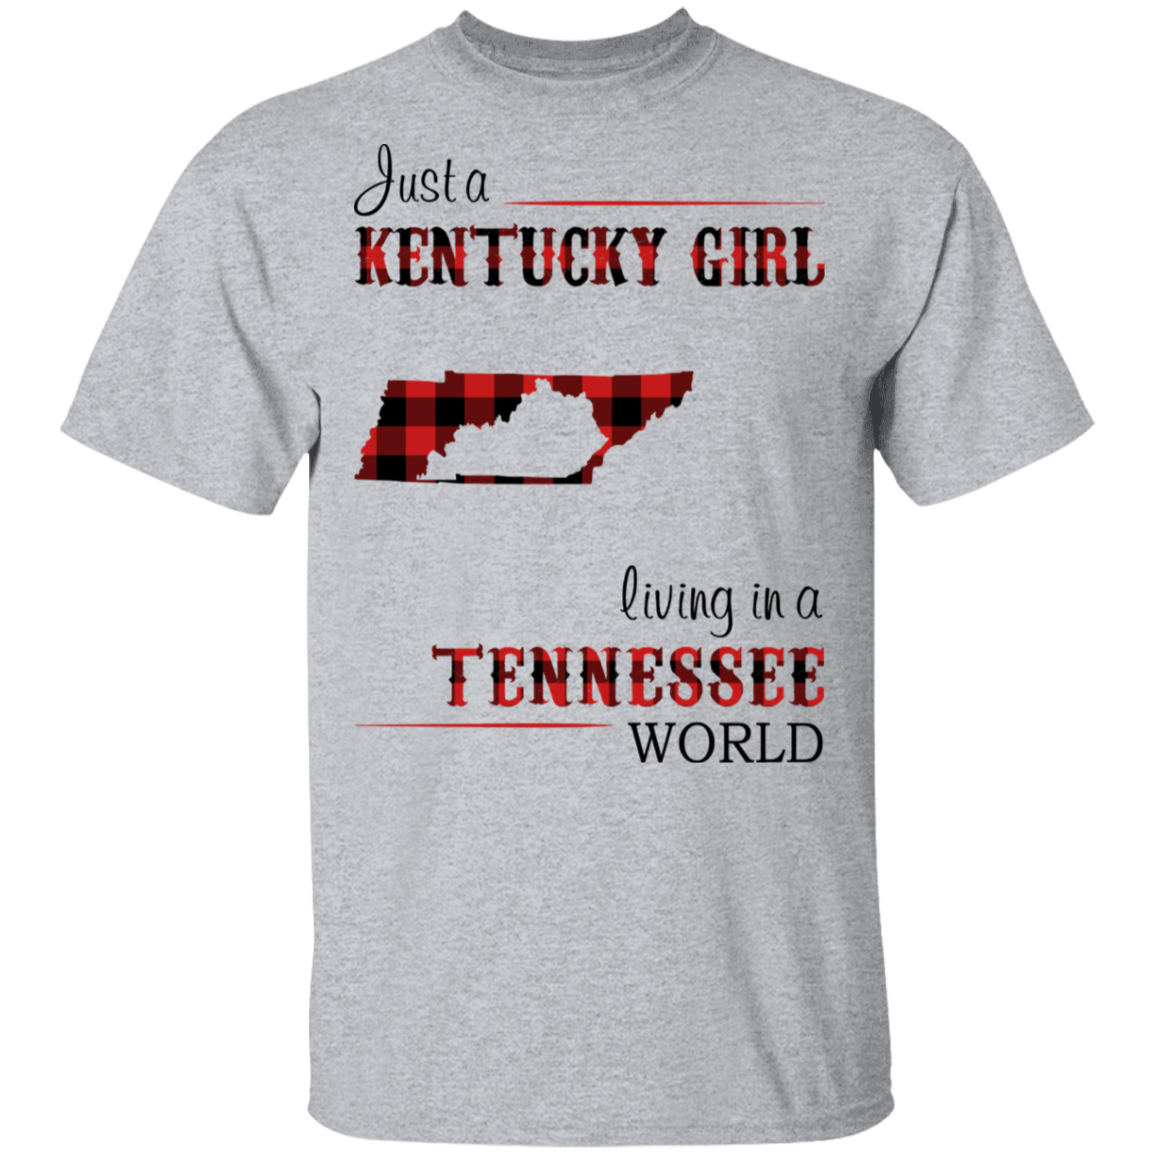 JUST A KENTUCKY GIRL LIVING IN A TENNESSEE WORLD